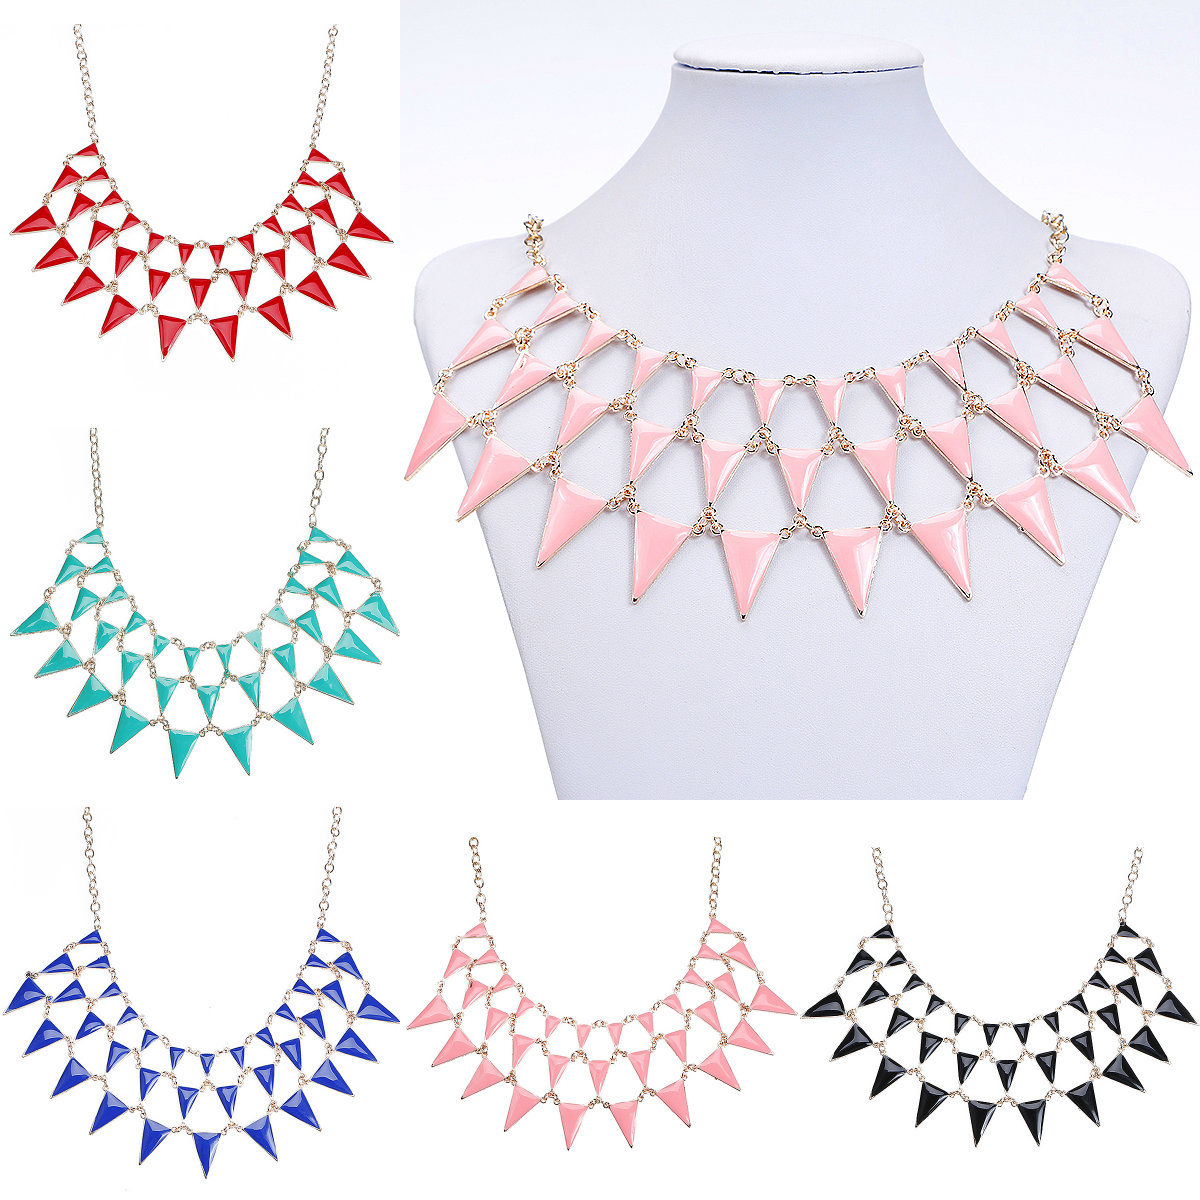 5 Colors Option 1PC New Fashion Multilayer Craft Glaze Triangle Pendent Bib Choker Statement Necklace Charm Gift(China (Mainland))